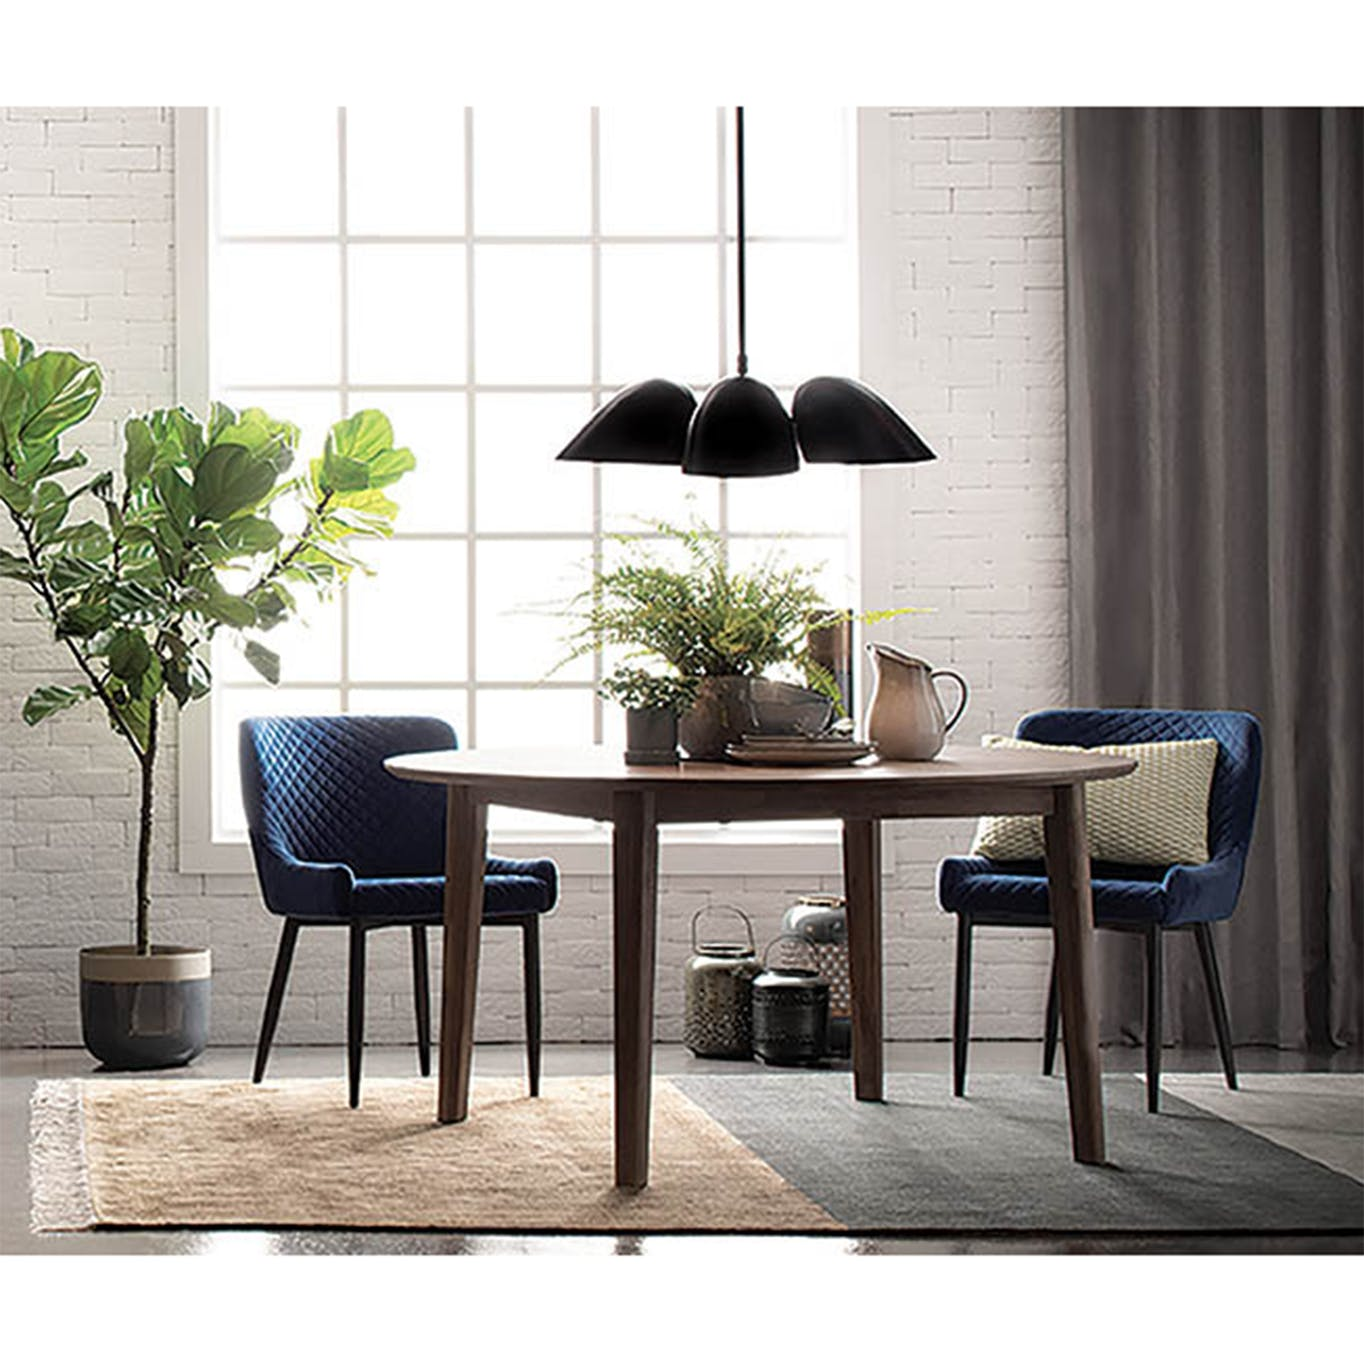 Round wooden dining table with 2 navy dining chairs